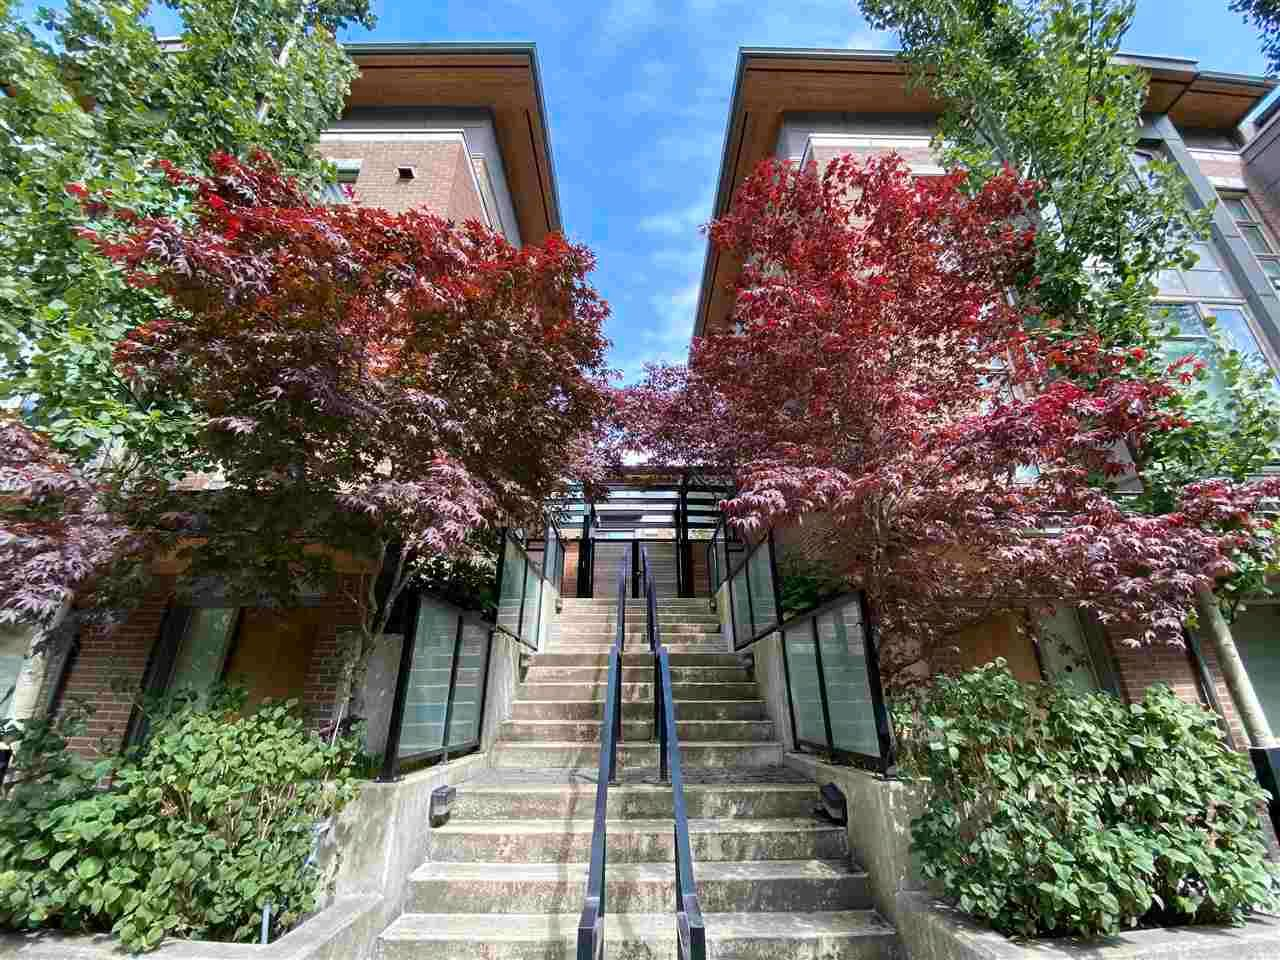 Main Photo: 5502 OAK Street in Vancouver: Cambie Townhouse for sale (Vancouver West)  : MLS®# R2591513